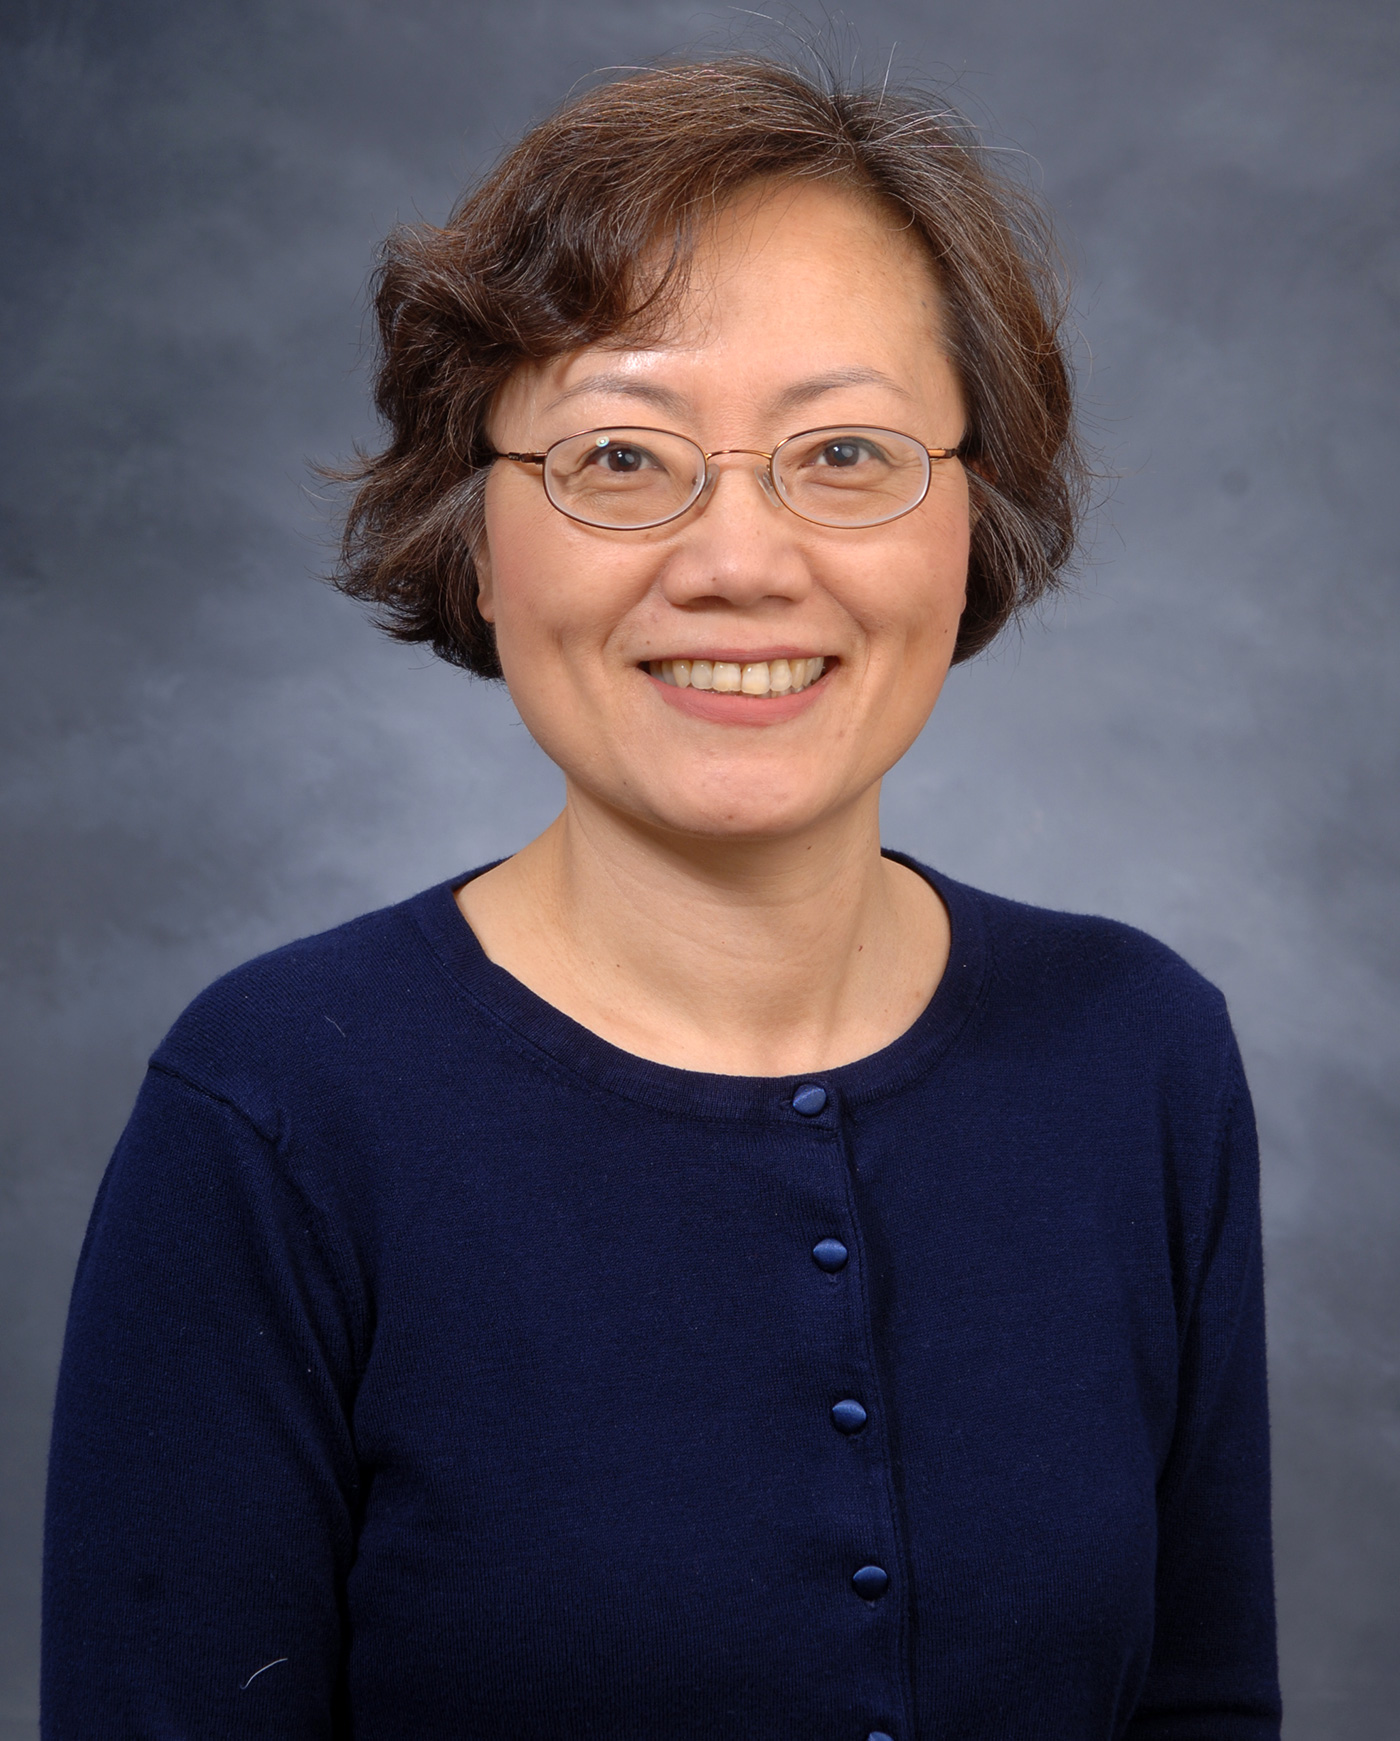 Xiaoqi (Jackie) Zhang is a professor in the department of Civil & Environmental Engineering at UMass Lowell.